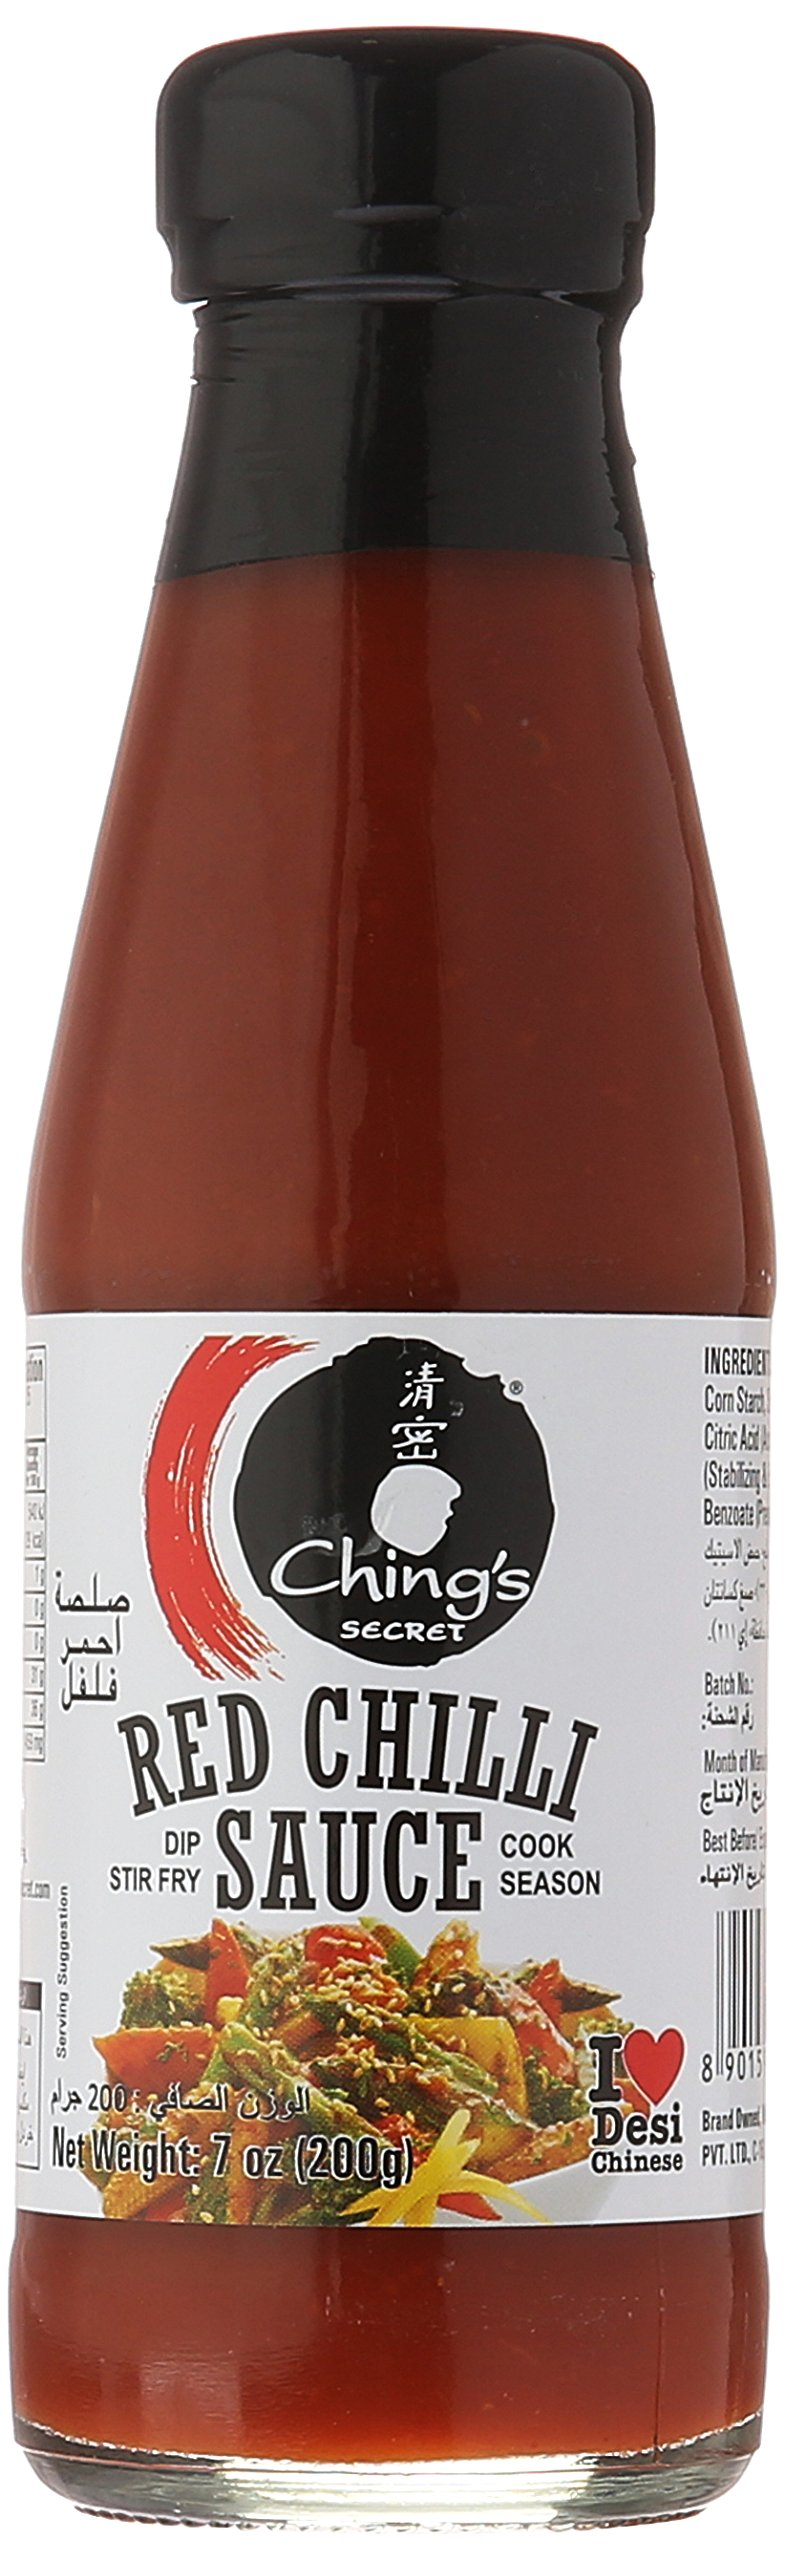 Chings Red Chilli Sauce 7 Oz